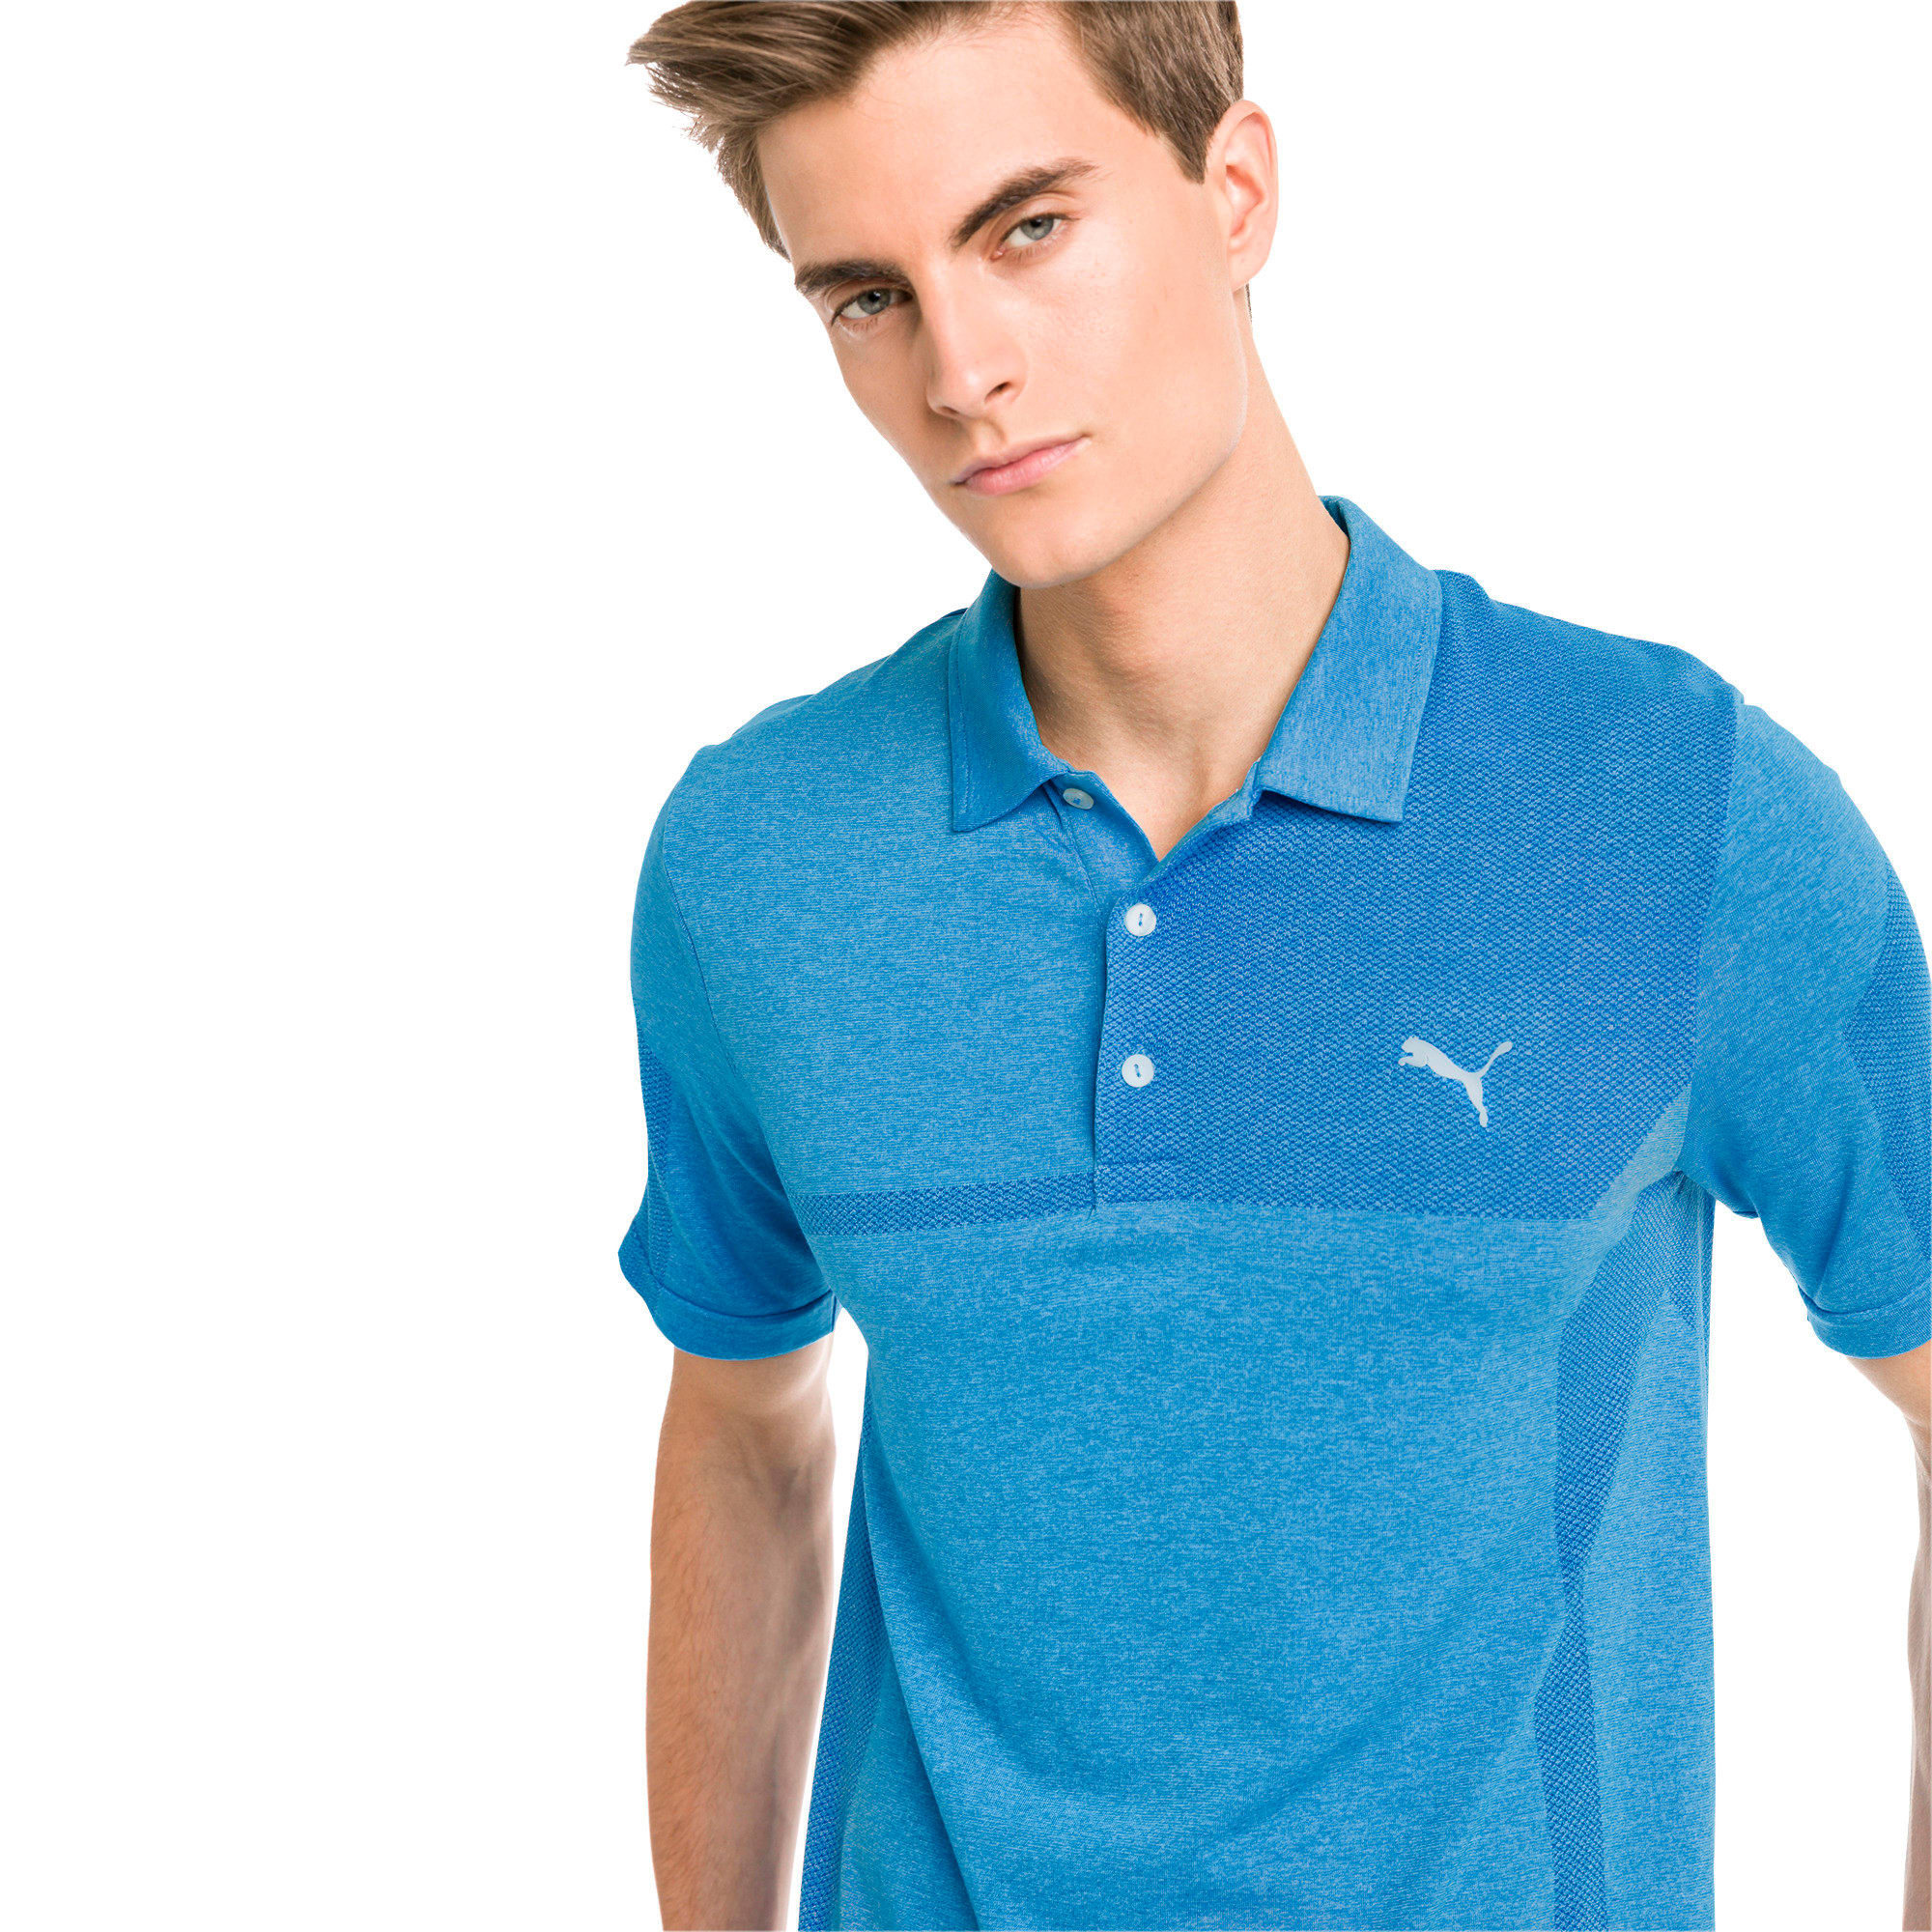 Thumbnail 1 of evoKNIT Breakers Herren Golf Polo, Bleu Azur Heather, medium